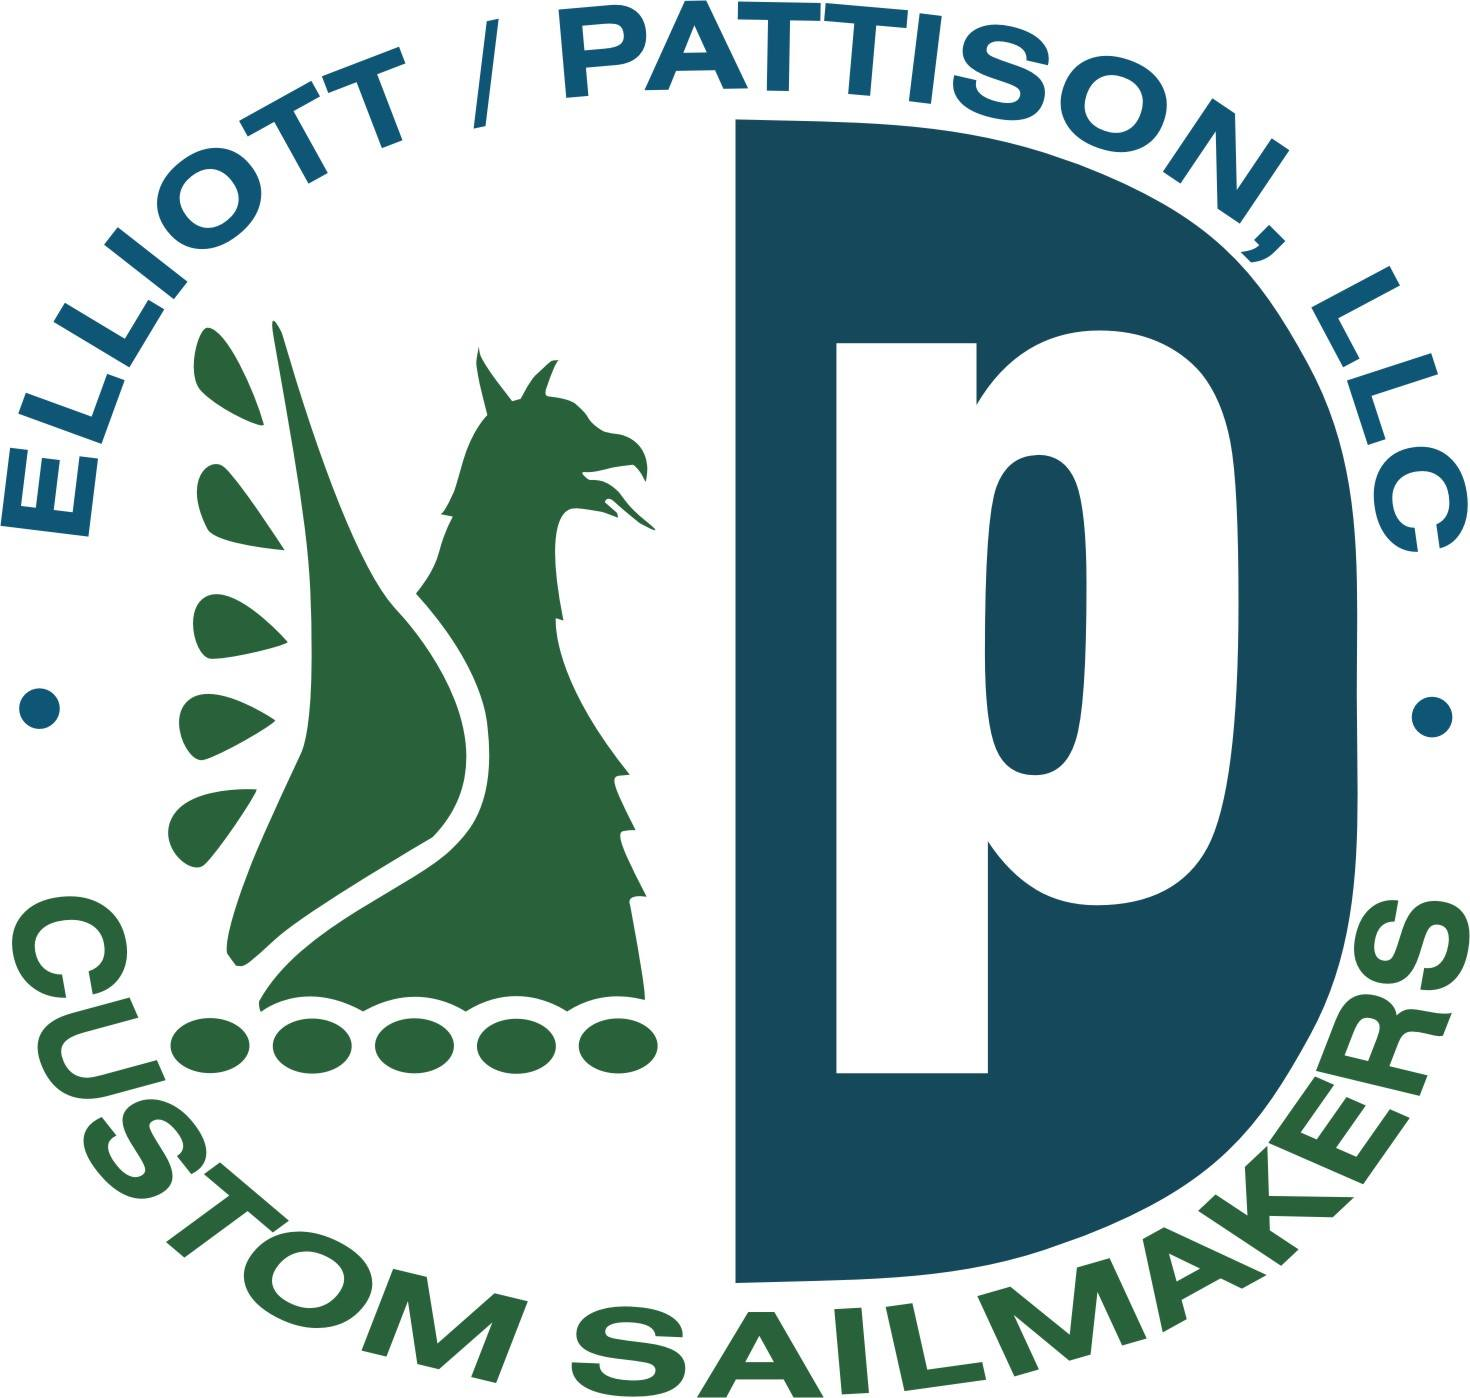 Elliott / Pattison Sailmakers, Inc.